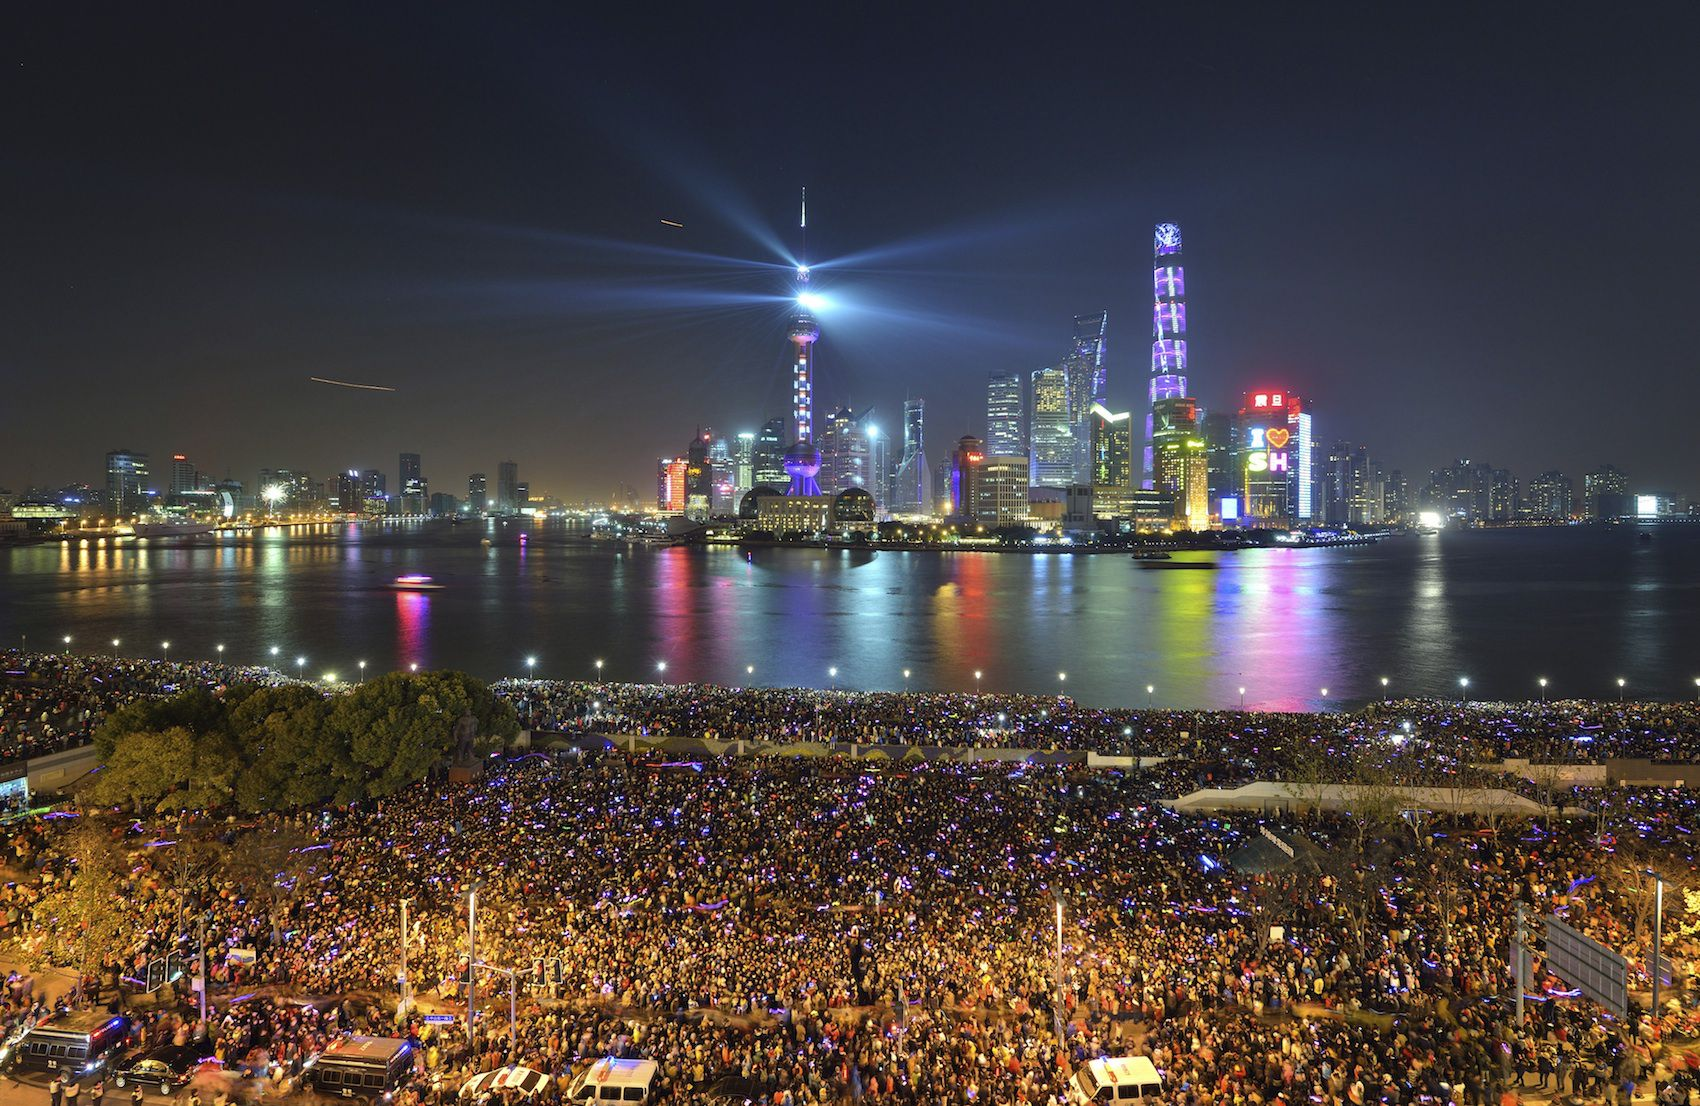 People watch a light show before a stampede incident occurred at the New Year's celebration on the Bund, a waterfront area in central Shanghai December 31,